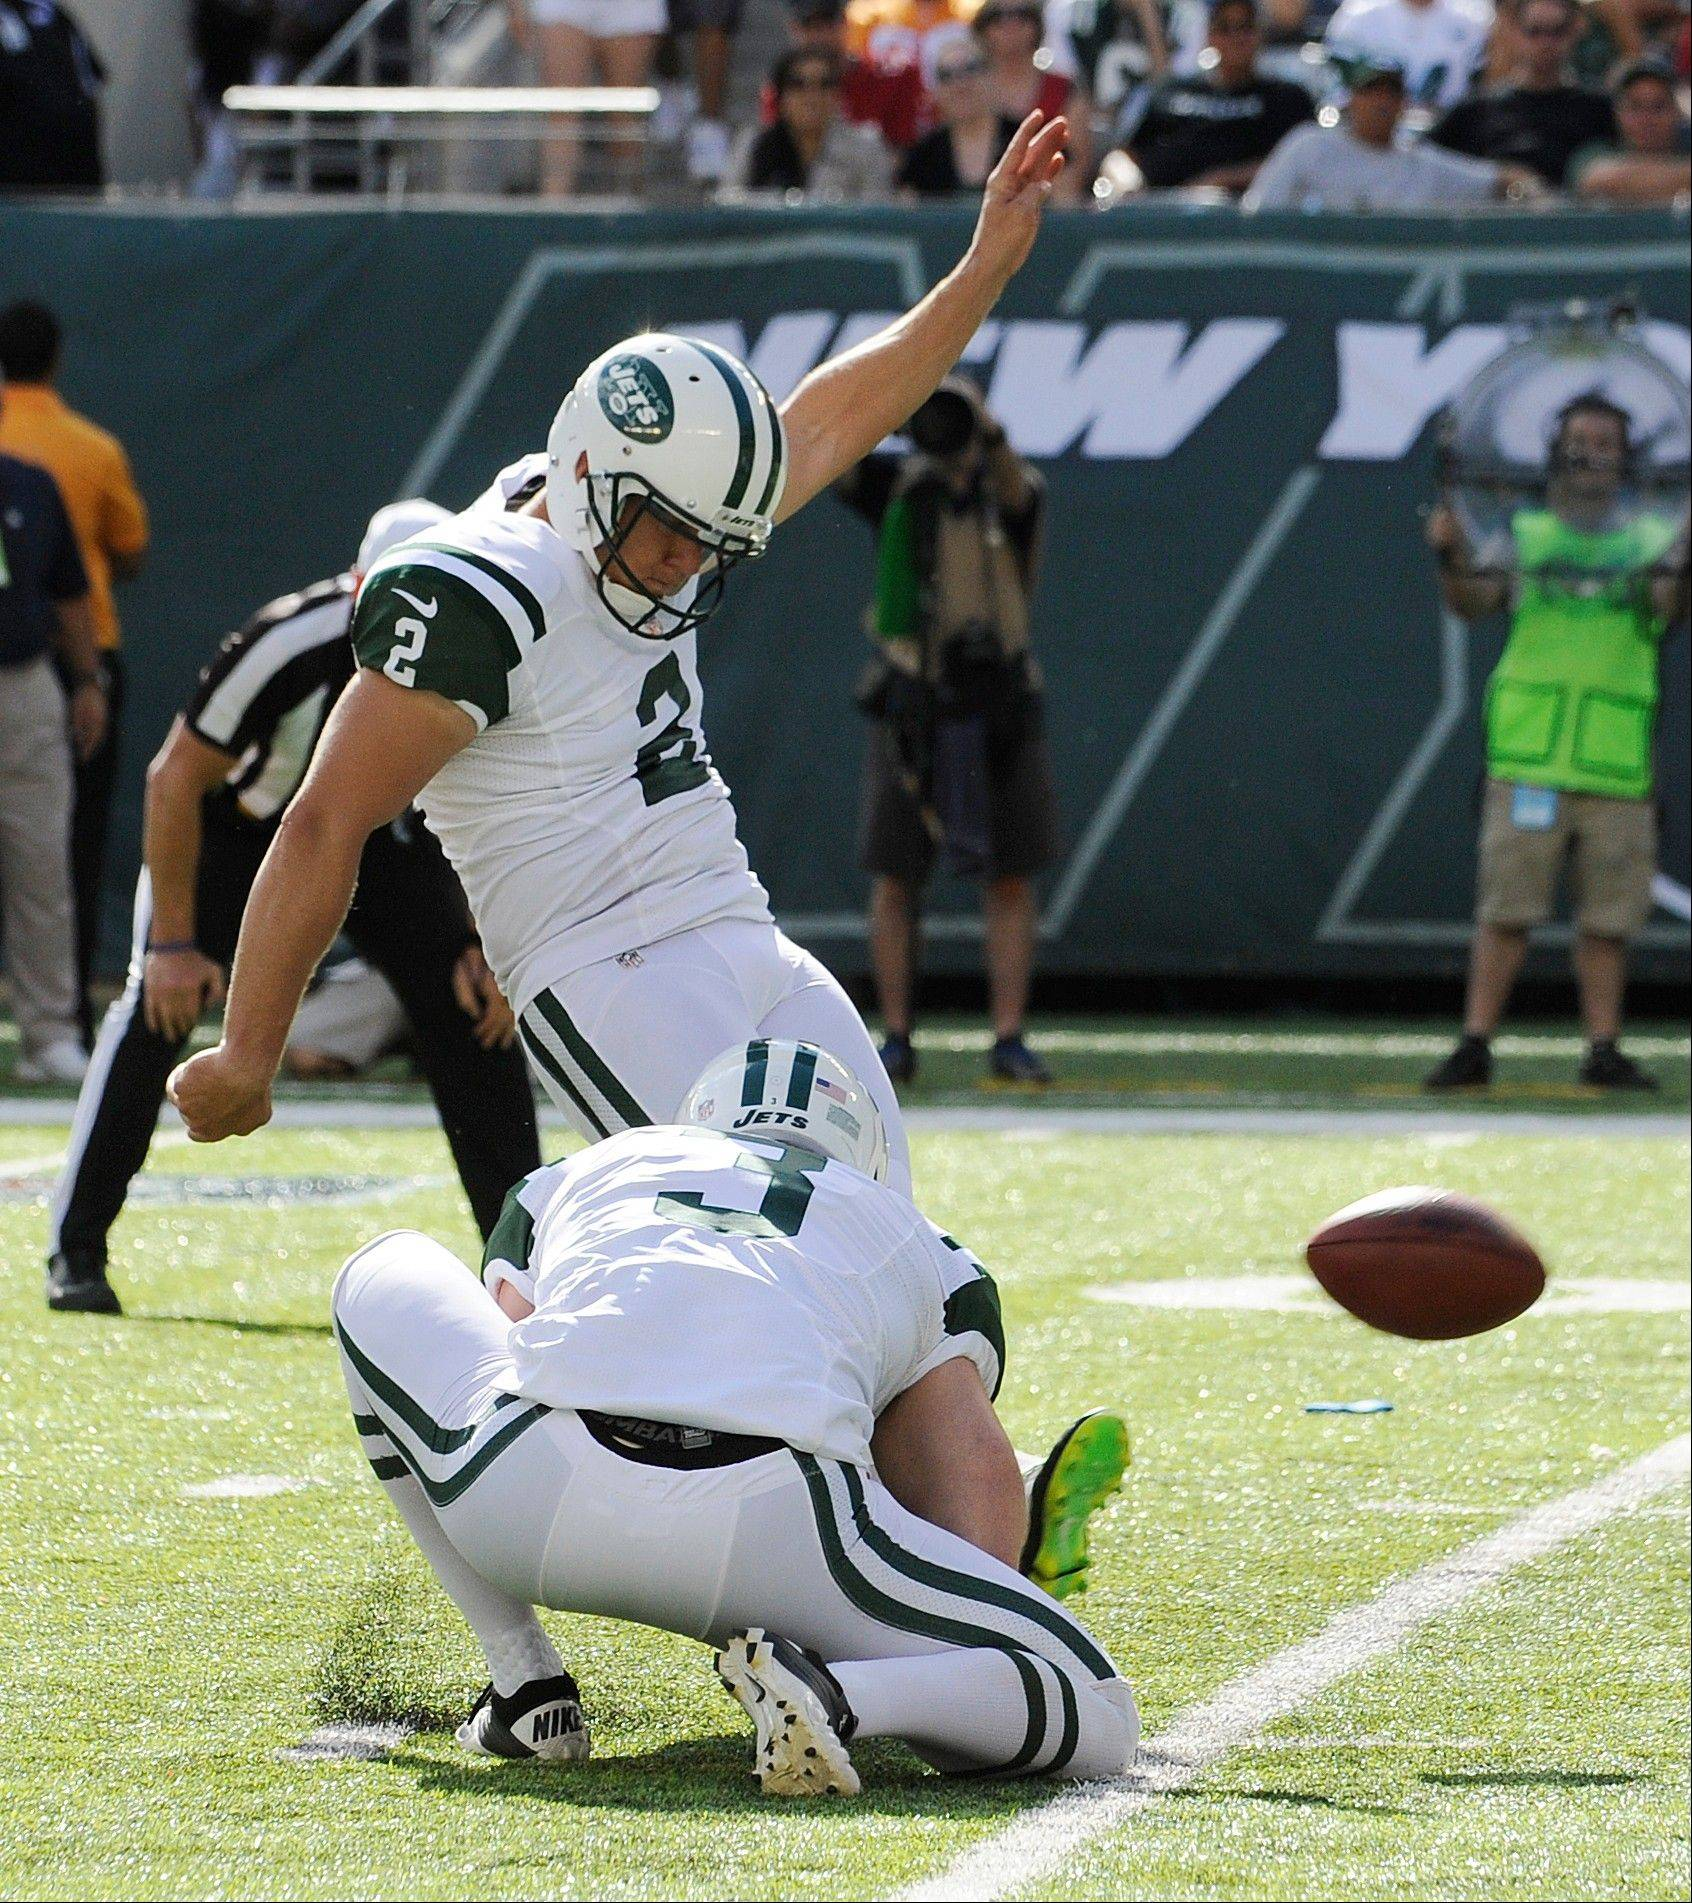 New York Jets' Nick Folk (2) kicks a 30-yard field goal as Robert Malone (3) holds in the second half of an NFL football game against the Tampa Bay Buccaneers, Sunday, Sept. 8, 2013, in East Rutherford, N.J.